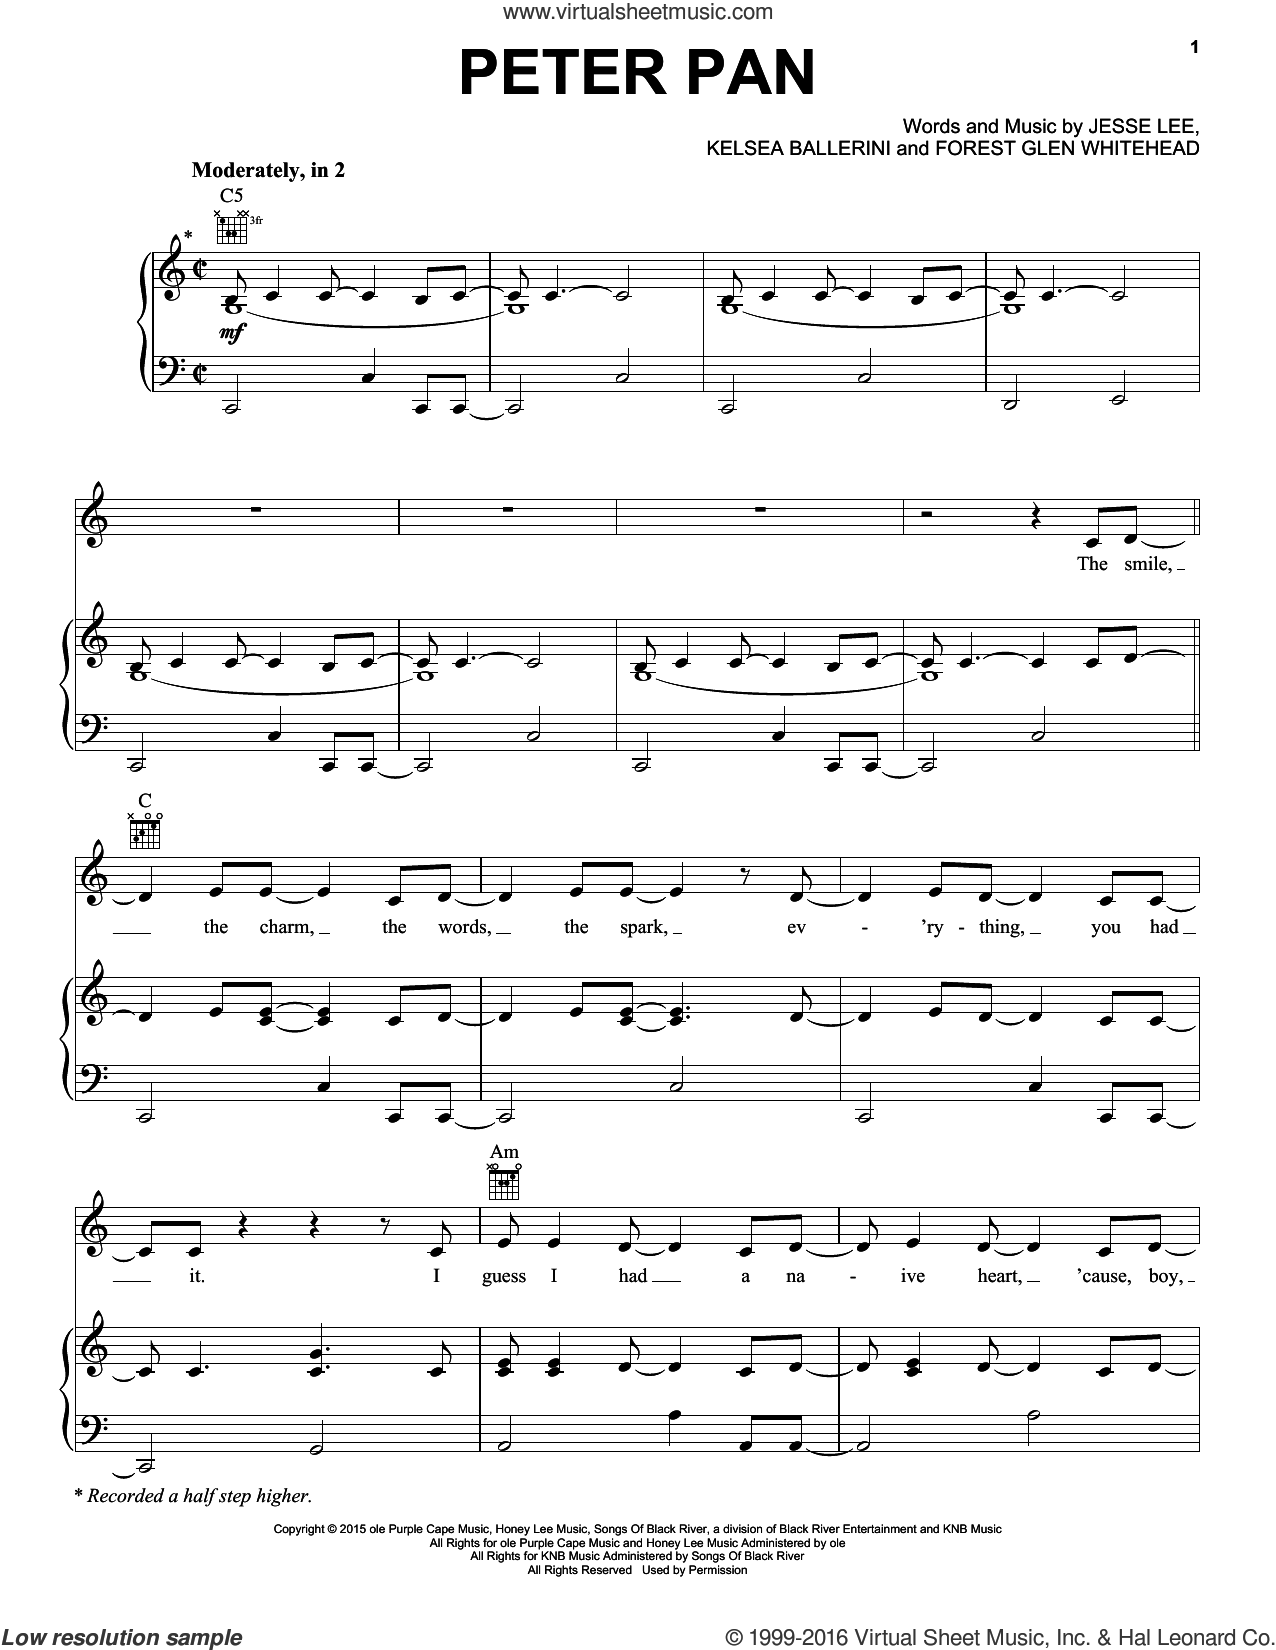 Peter Pan sheet music for voice, piano or guitar by Jesse Lee